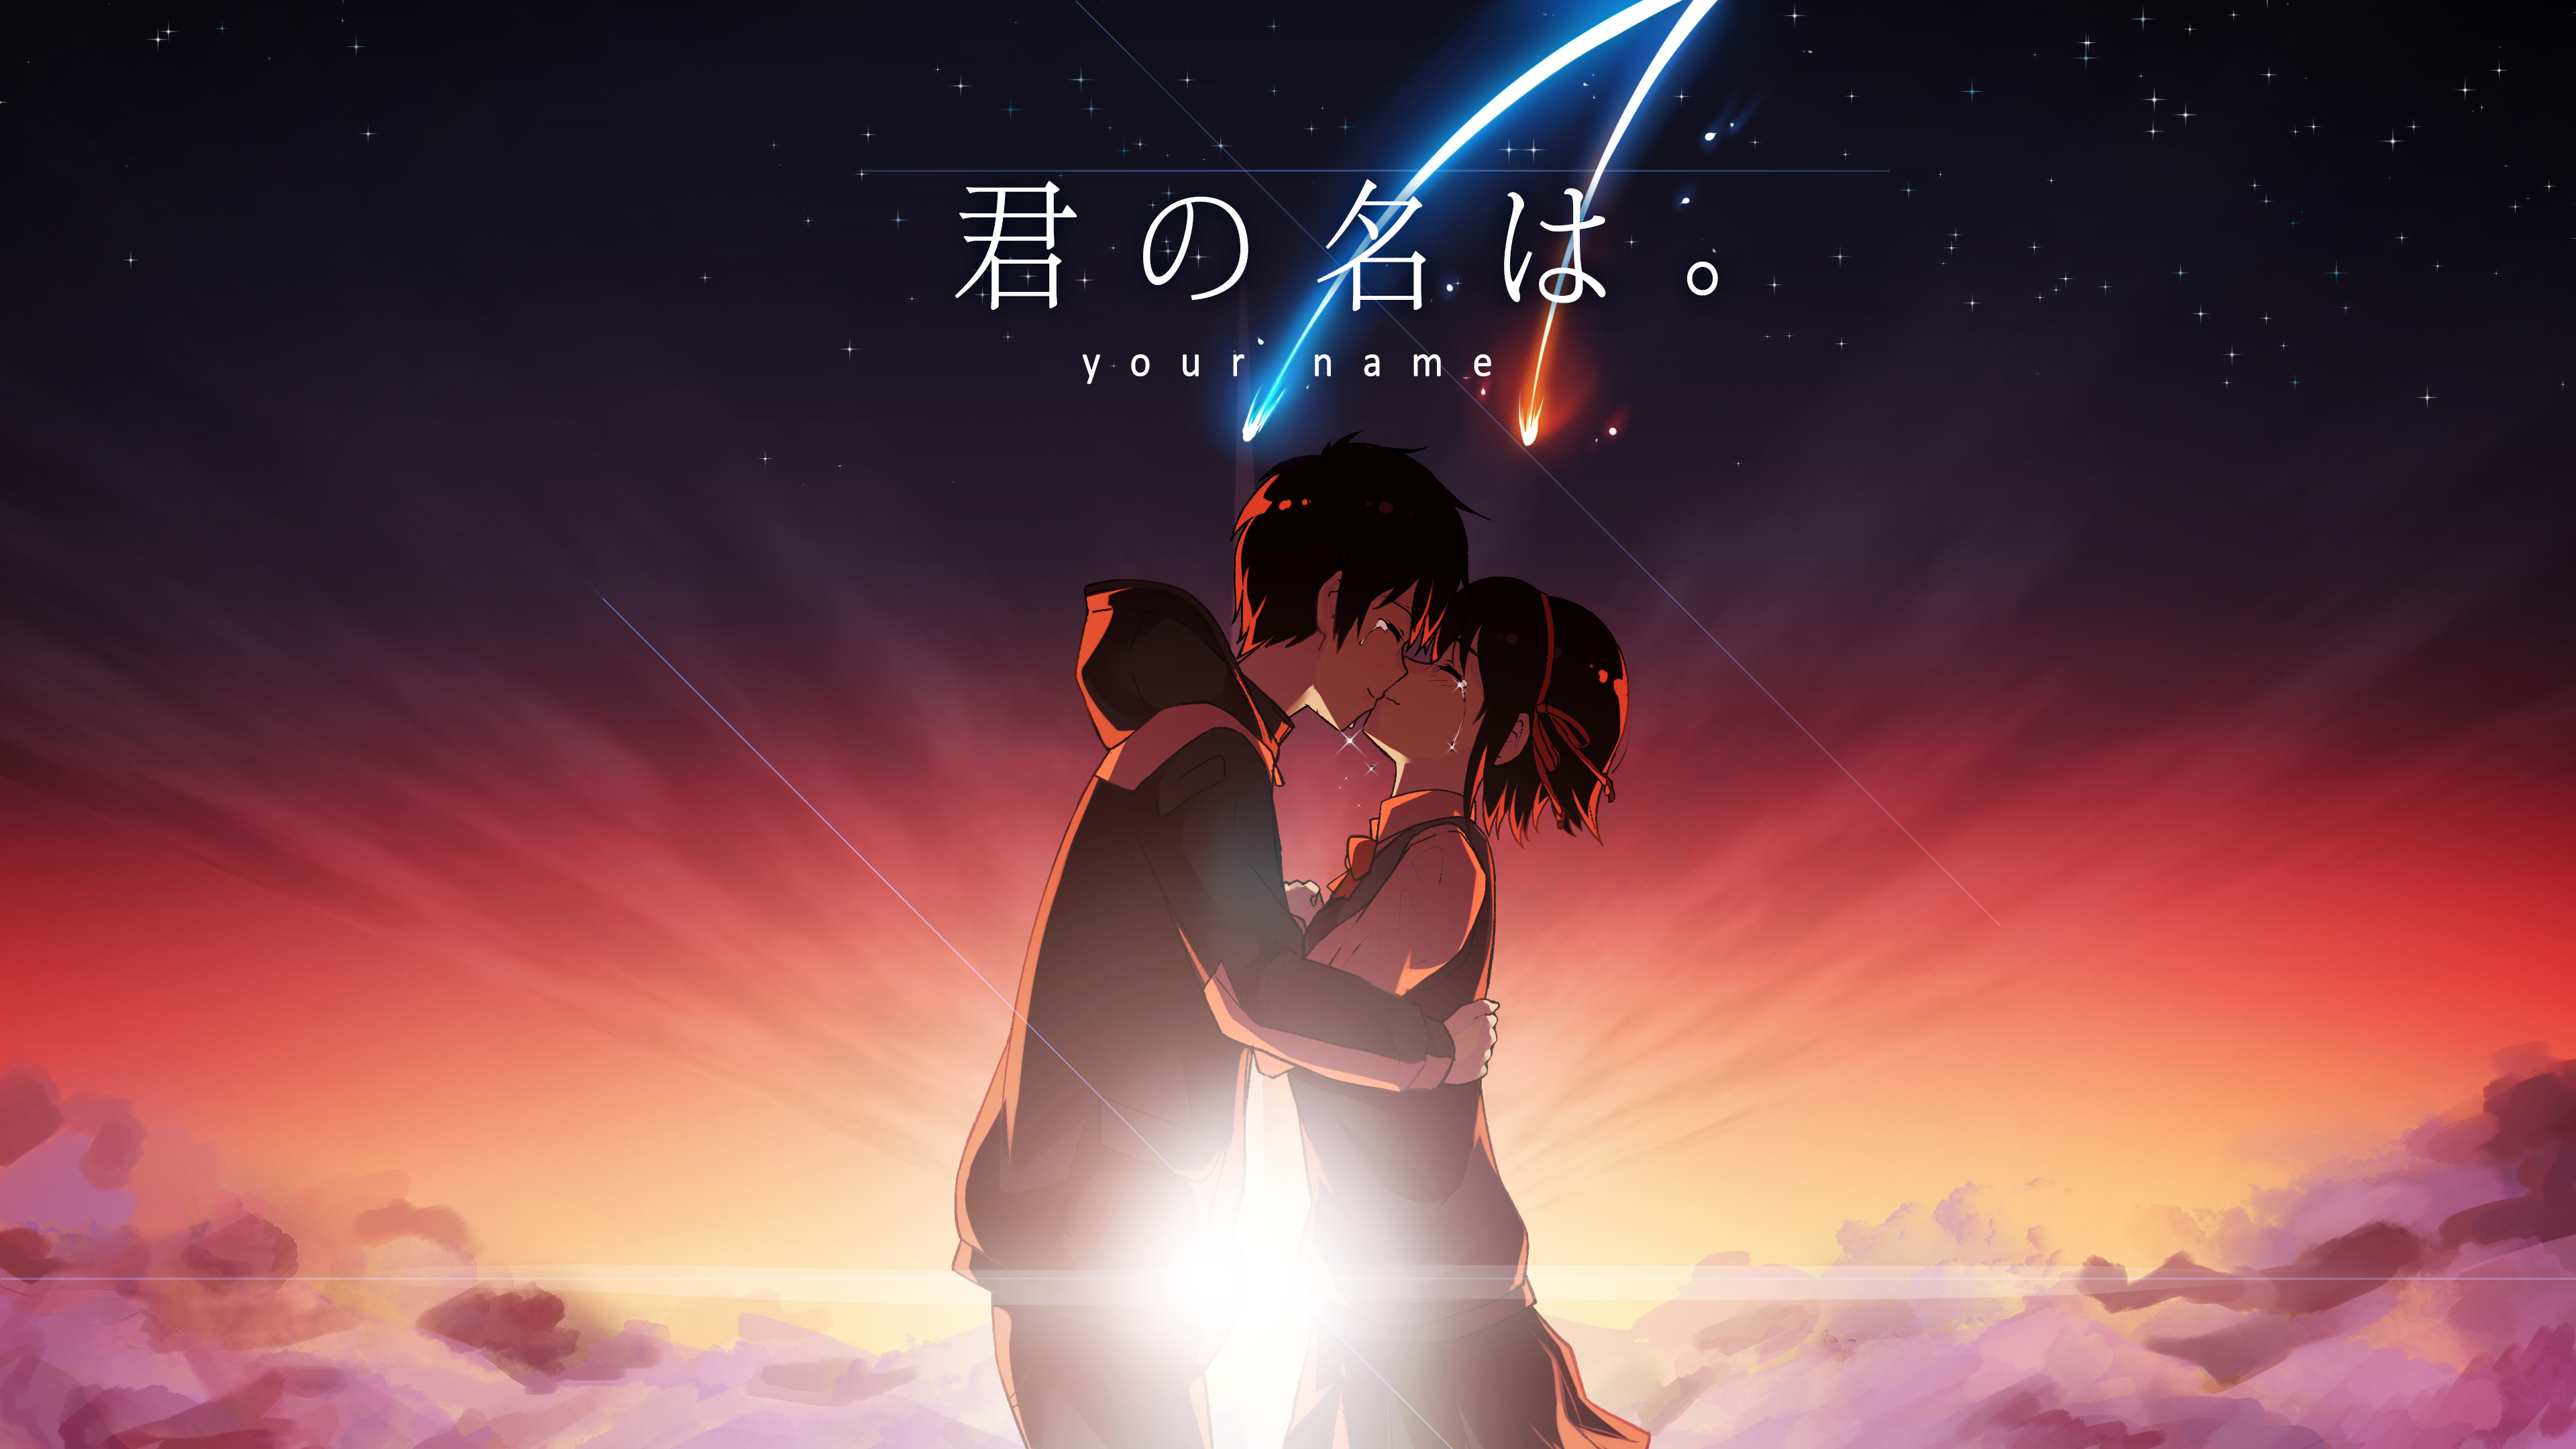 Your Name Desktop Wallpaper Posted By Samantha Tremblay